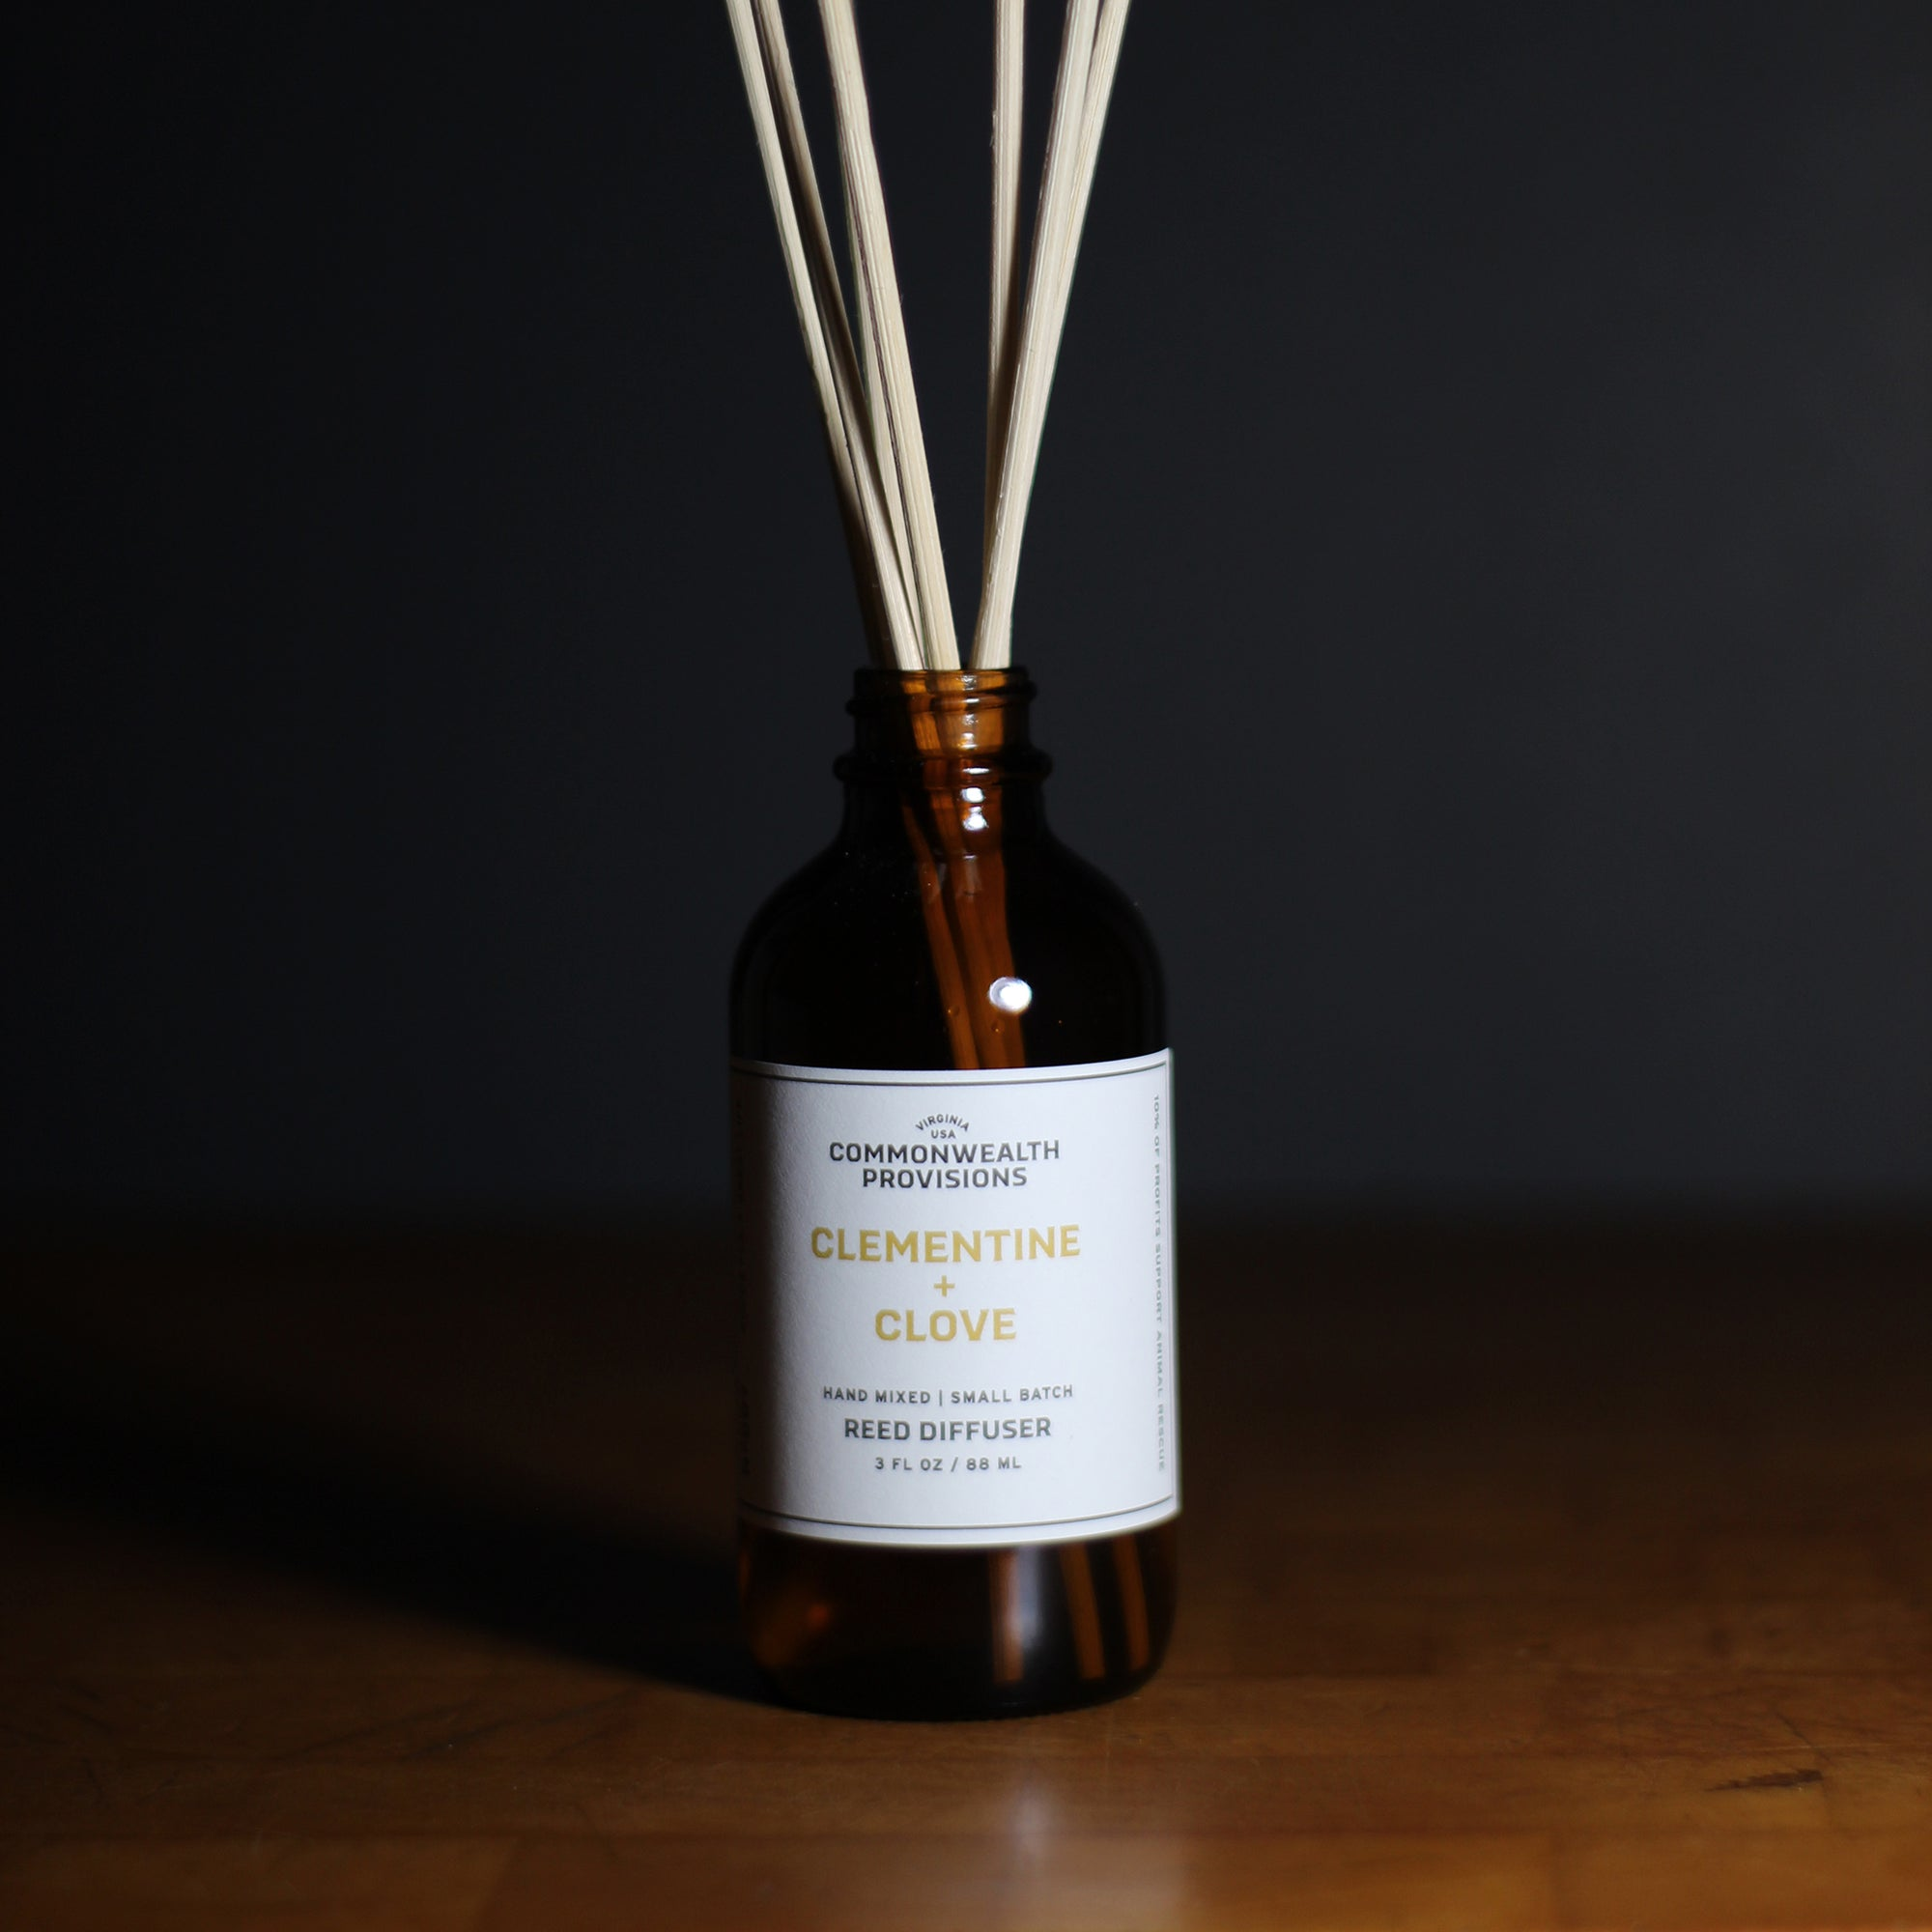 Commonwealth Provisions Clementine + Clove Reed Diffuser